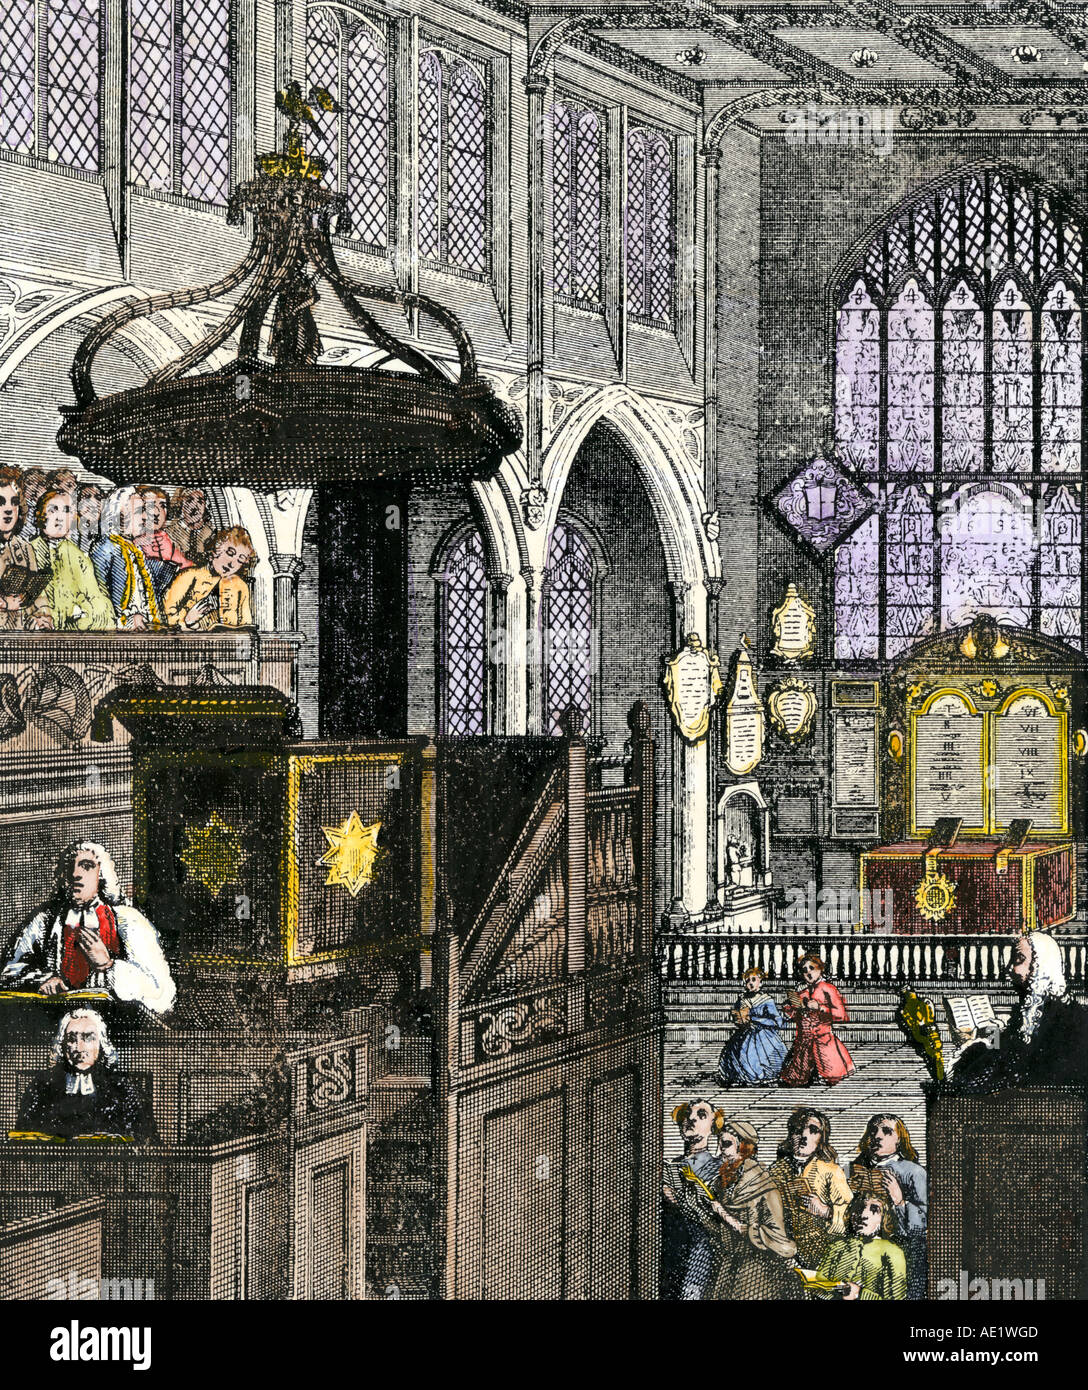 St. Margaret's Church Westminster between 1692 and 1720. Hand-colored woodcut - Stock Image